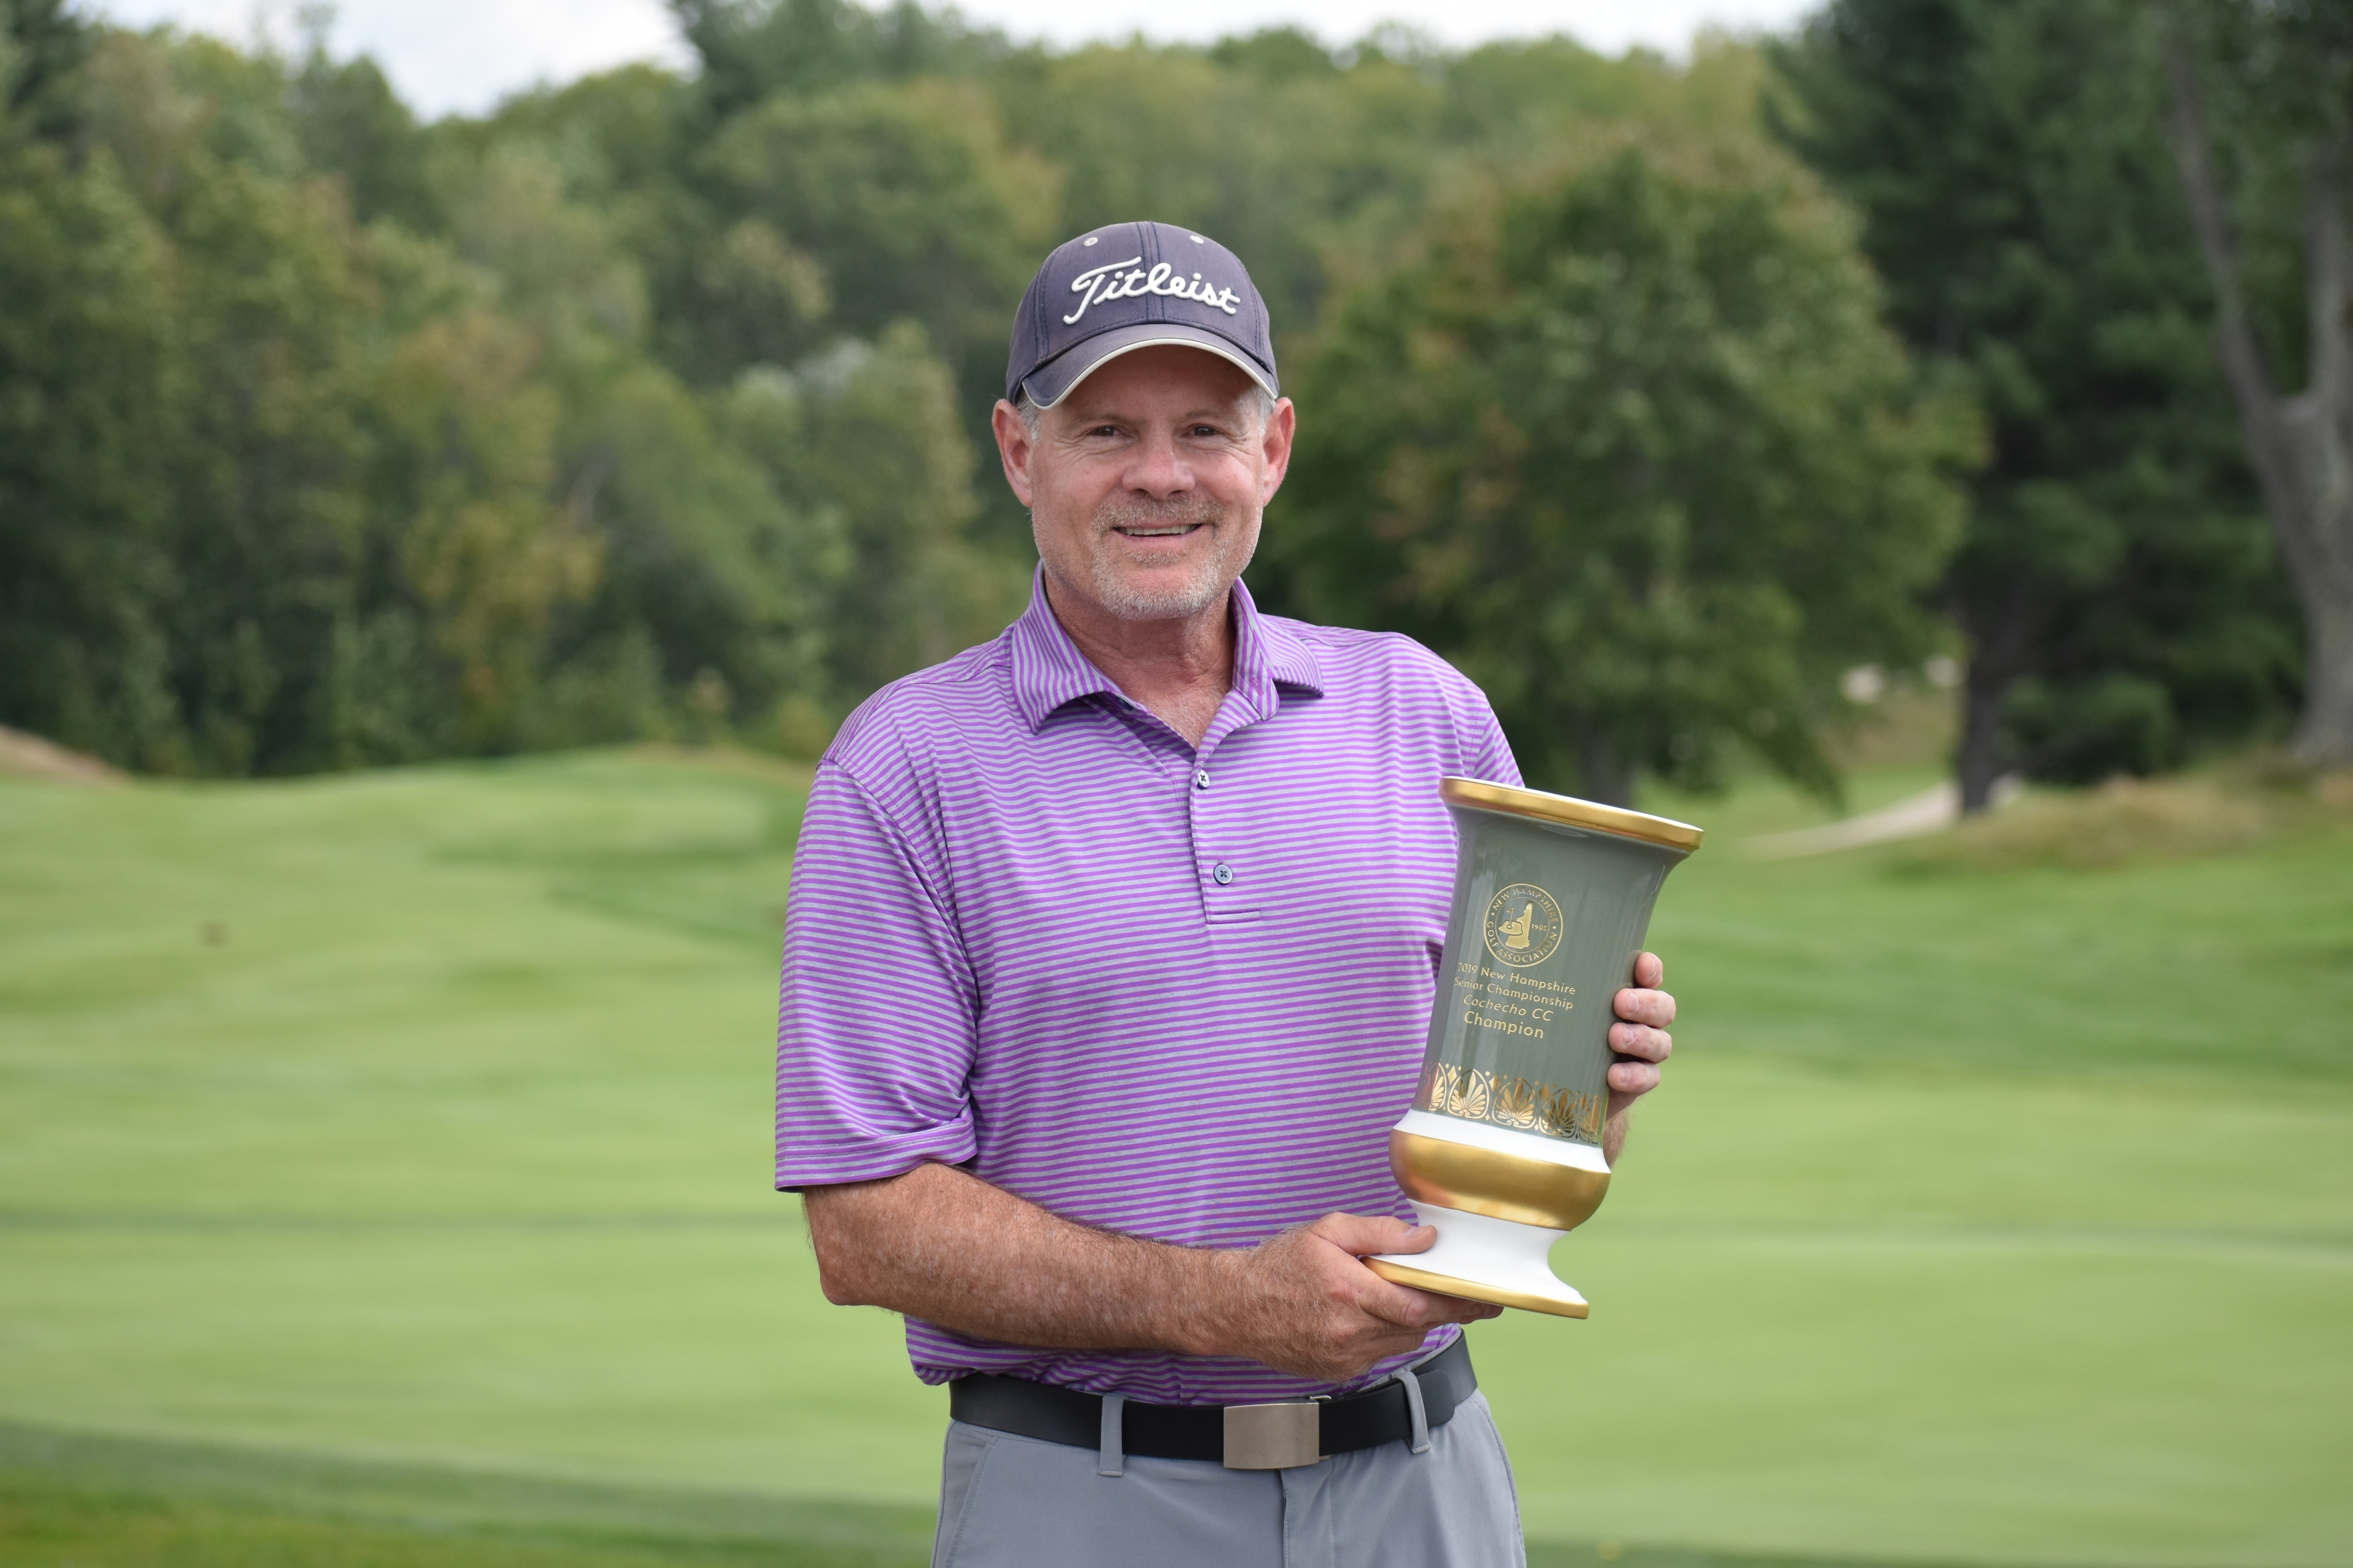 Fournier Finishes the Job to Capture His First NHGA Title